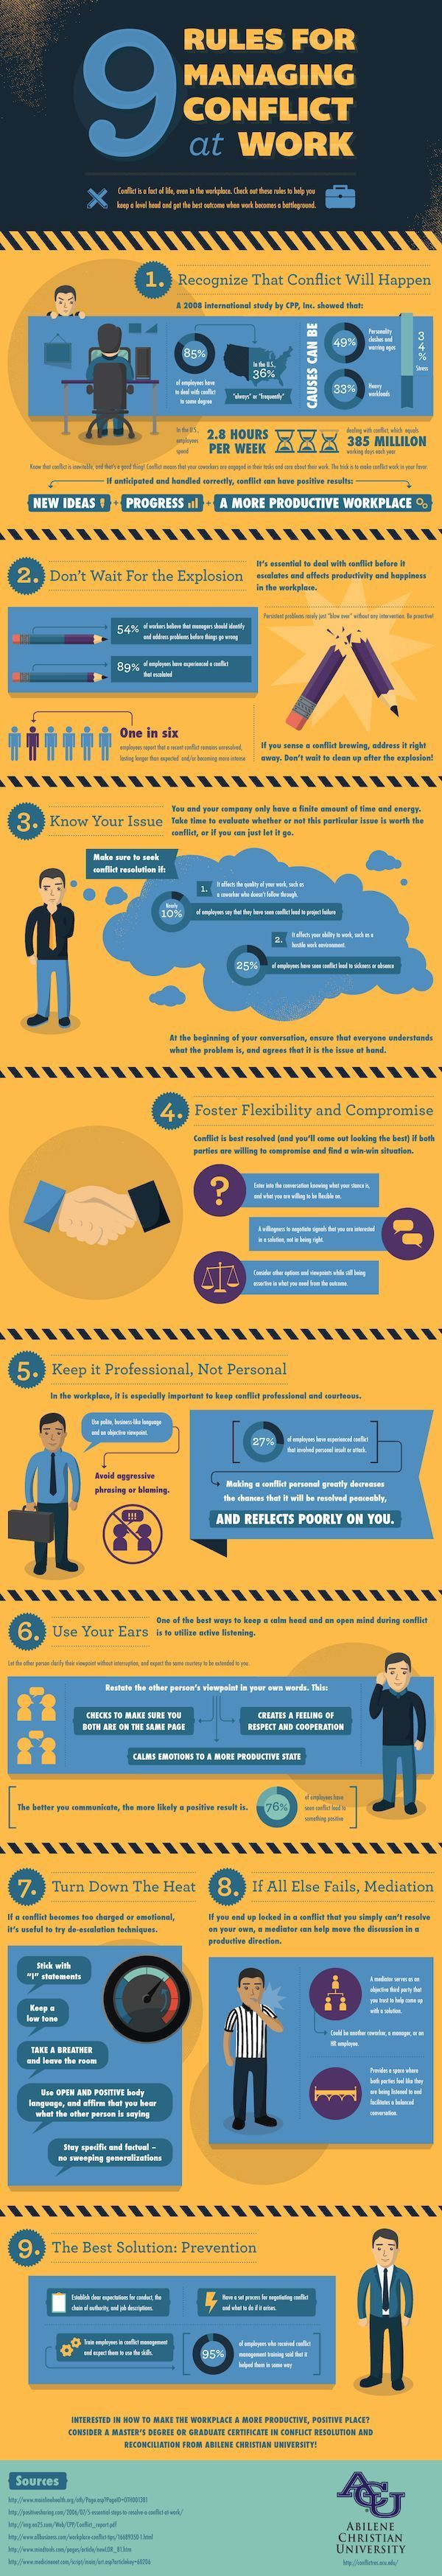 #infographic How to manage #conflict at work JAMSO helps #performance for life and business. Find out more on http://www.jamsovaluesmarter.com